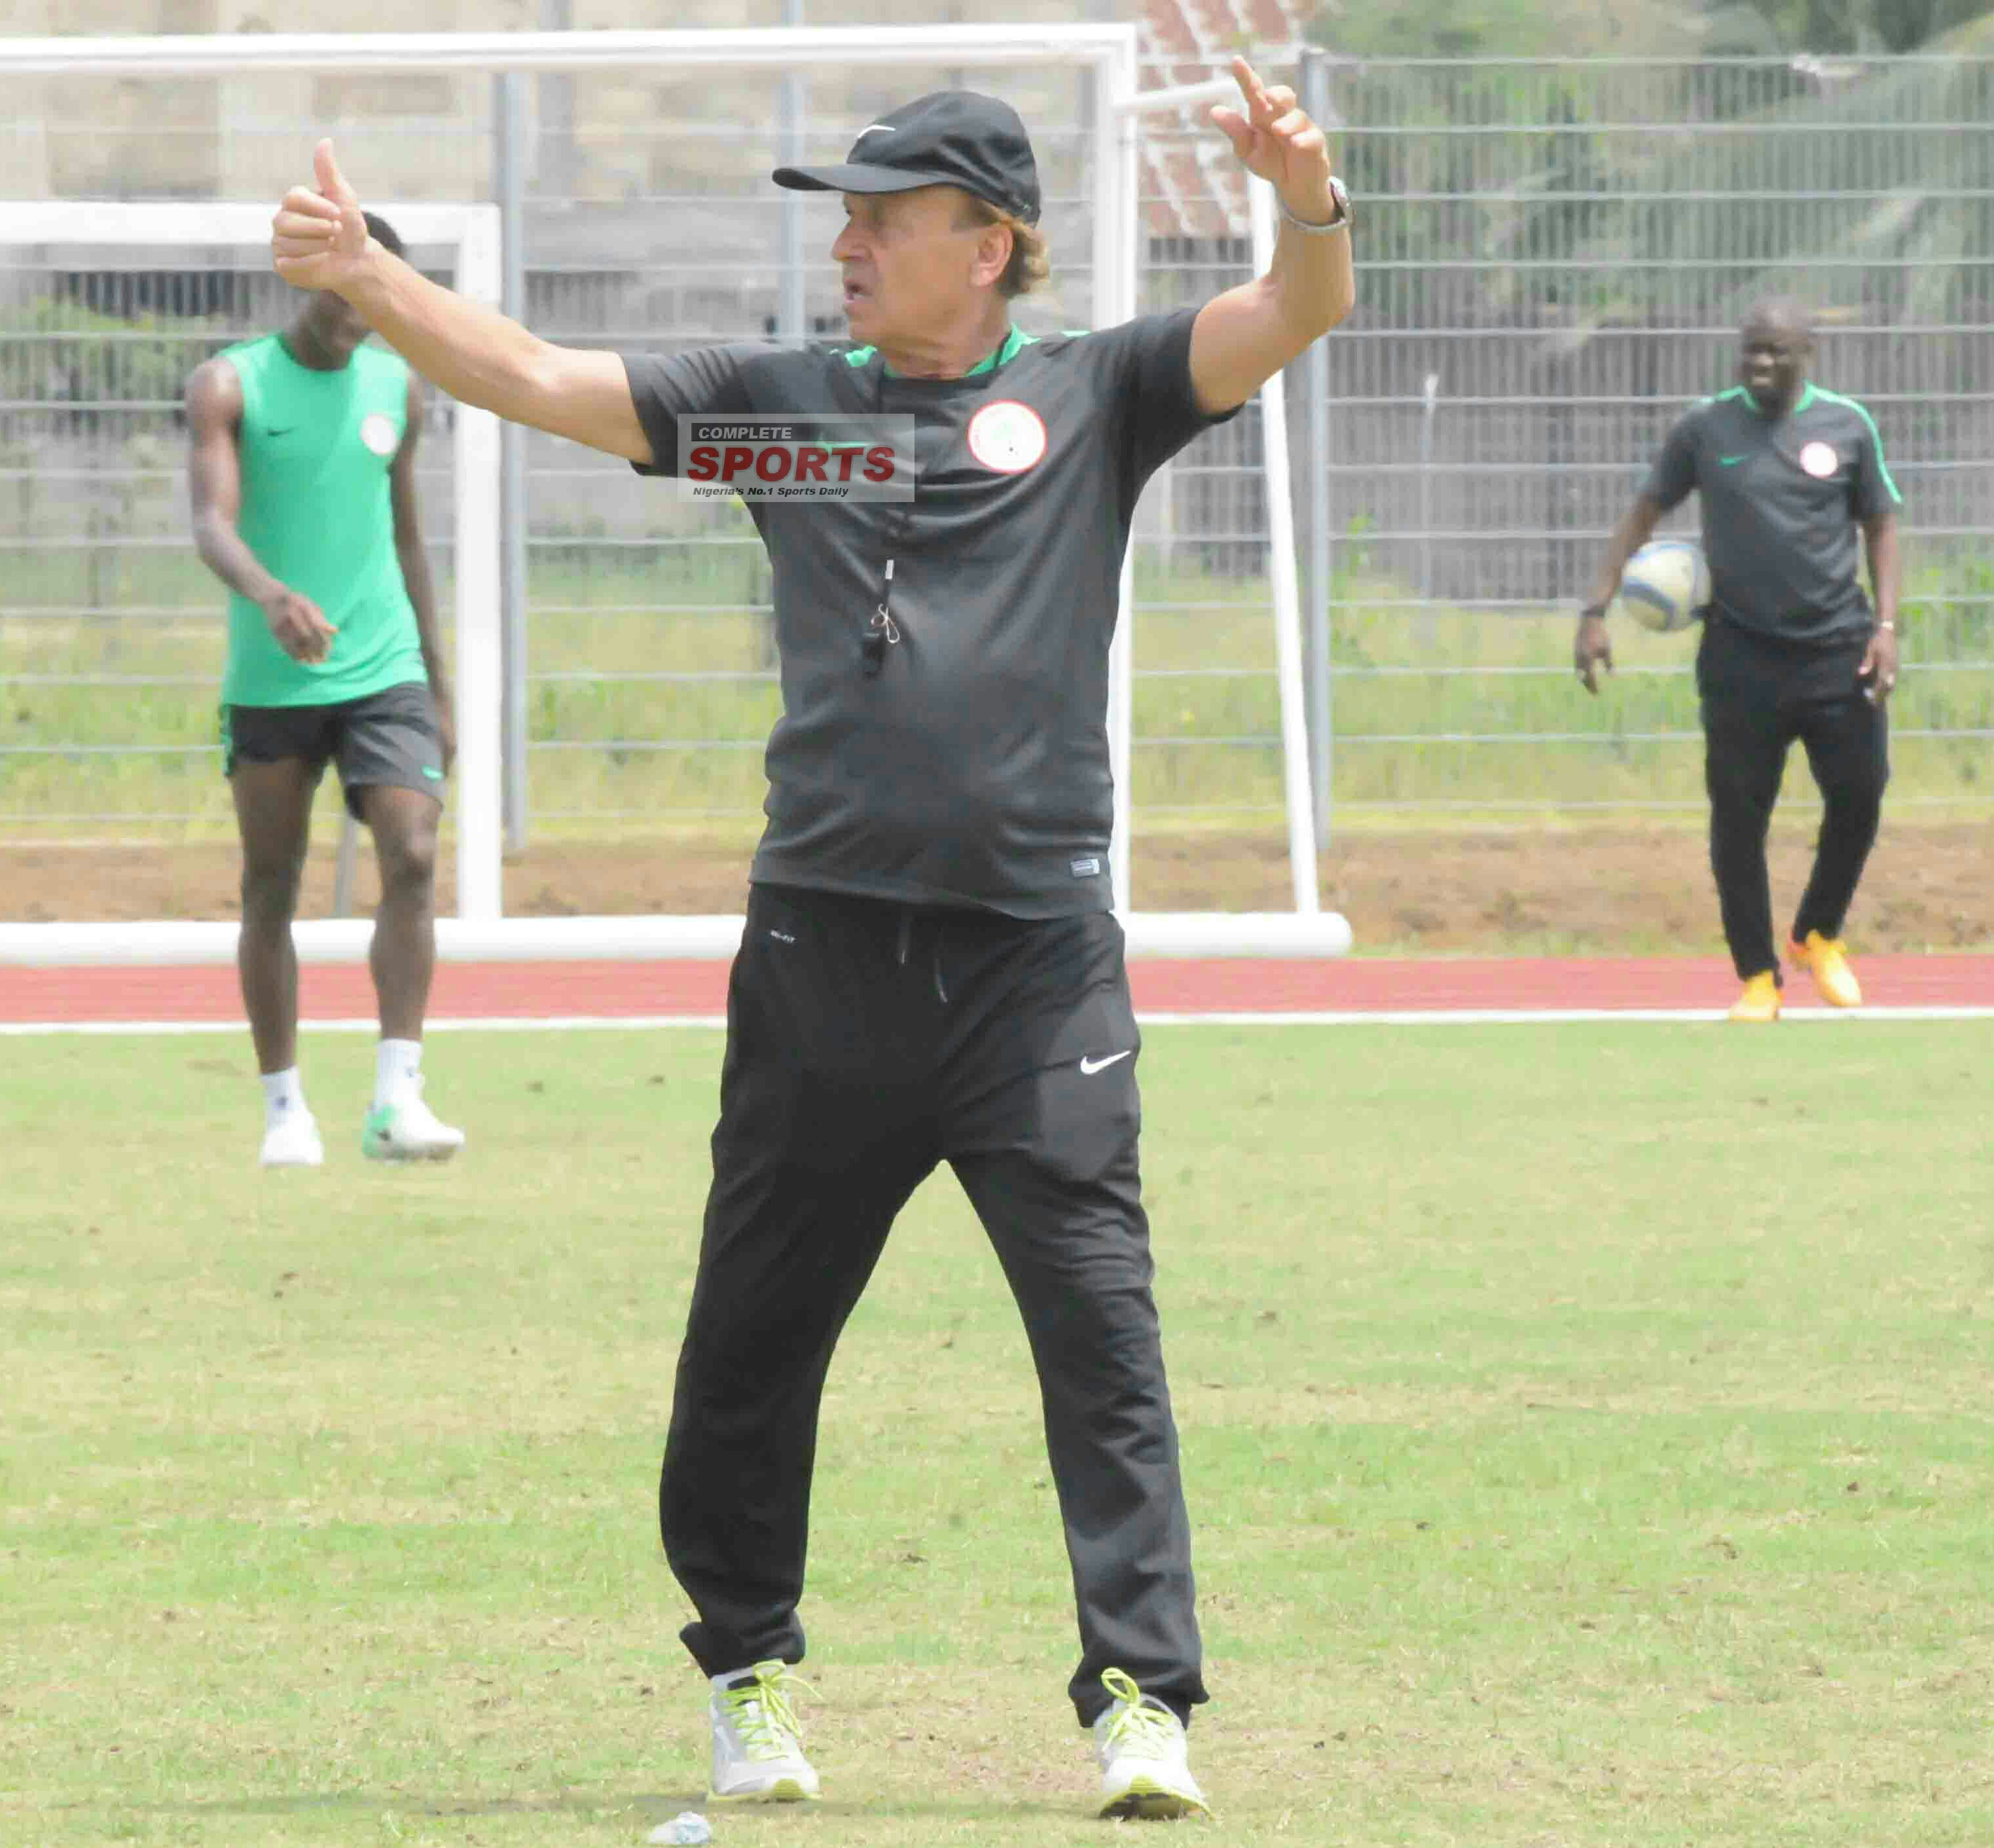 Amuneke: Rohr, NFF On Course; Need Nigerians' Support